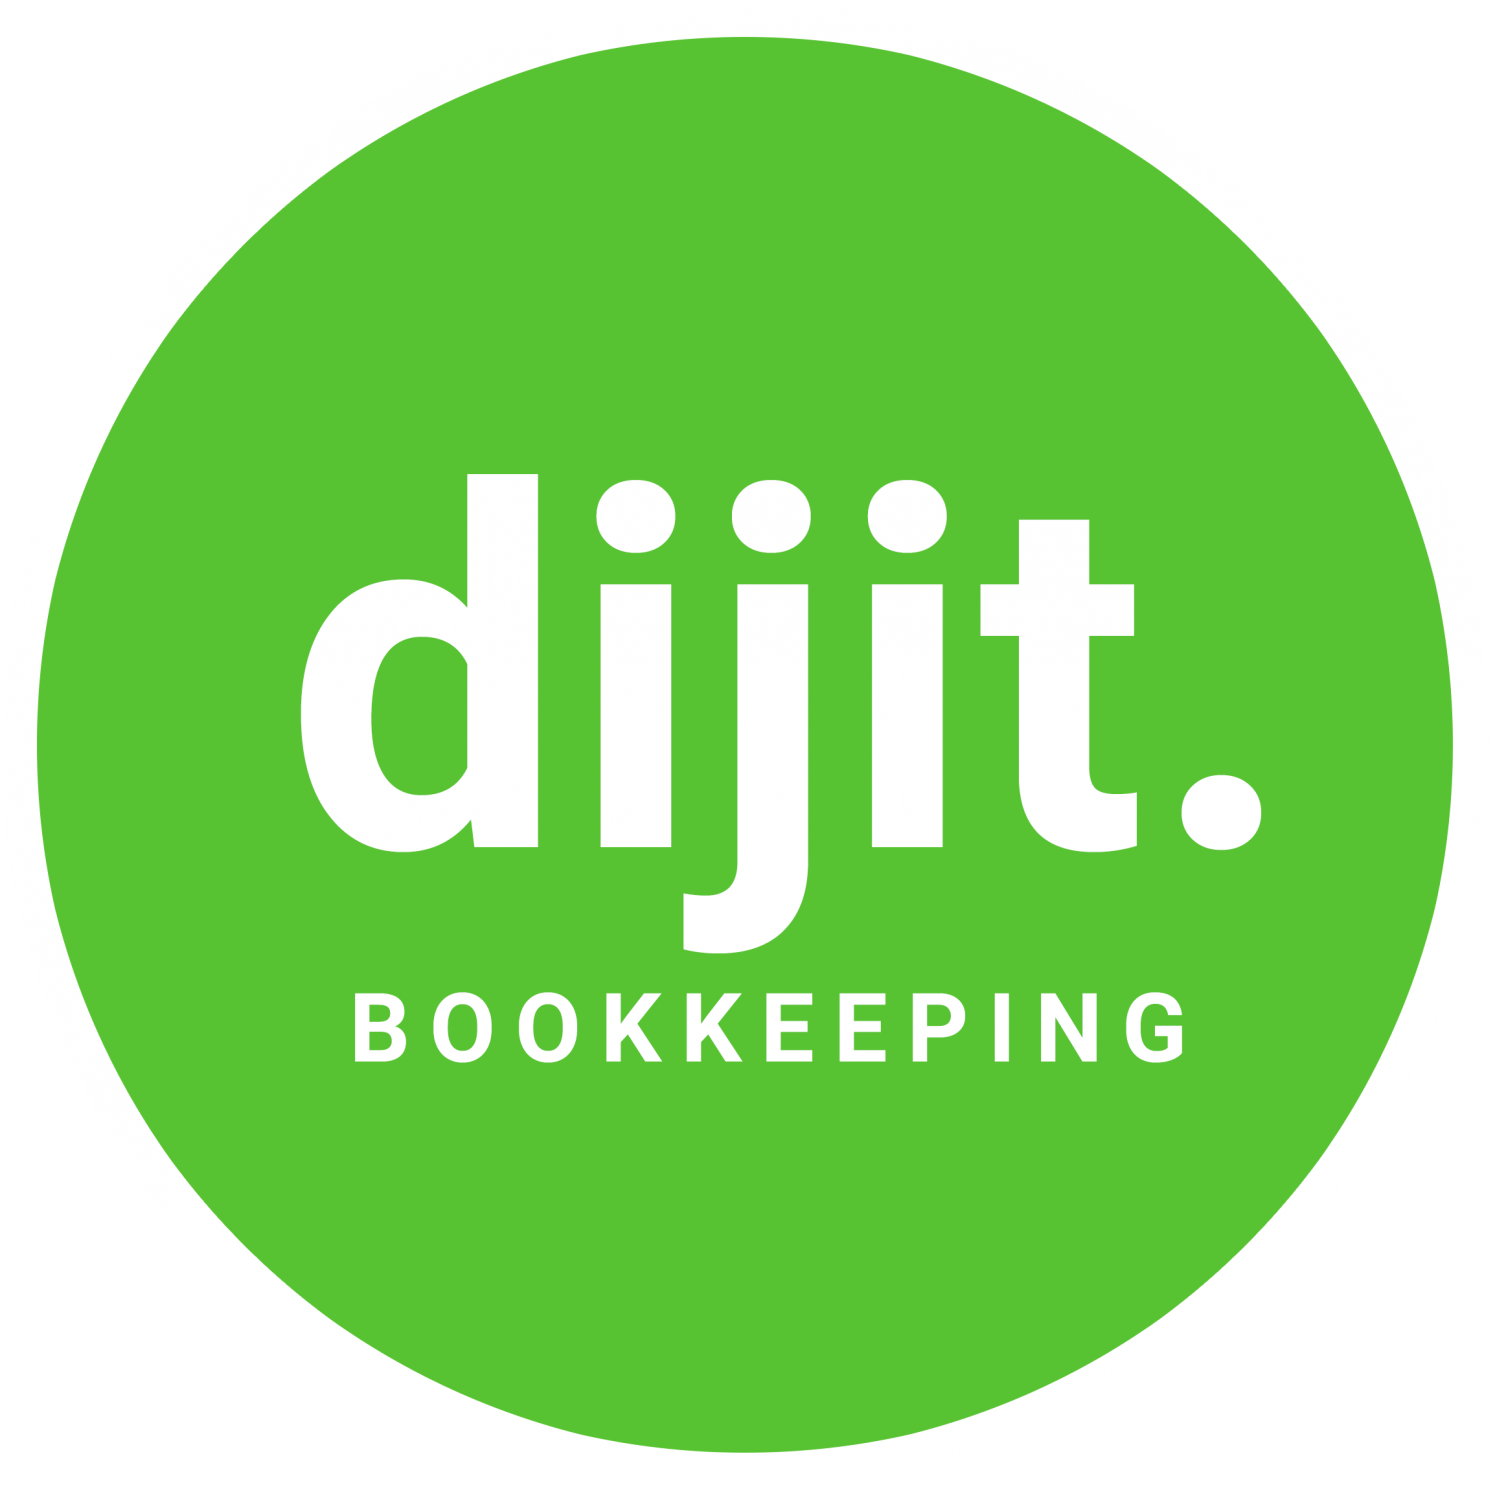 bedford bookkeeping - dijit